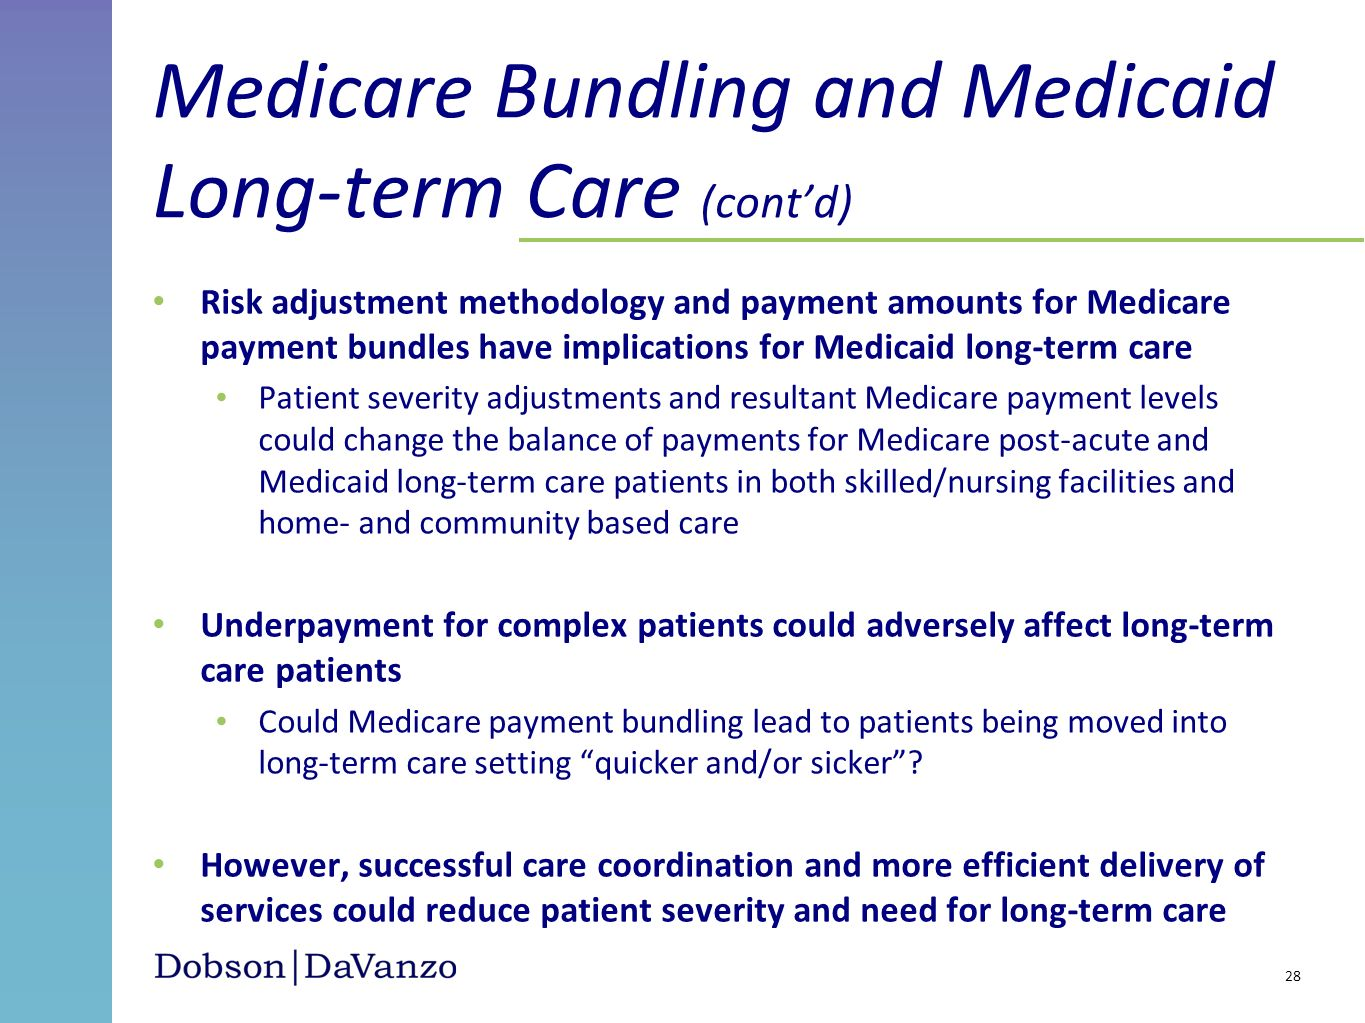 Medicare Bundling and Medicaid Long-term Care (cont'd)